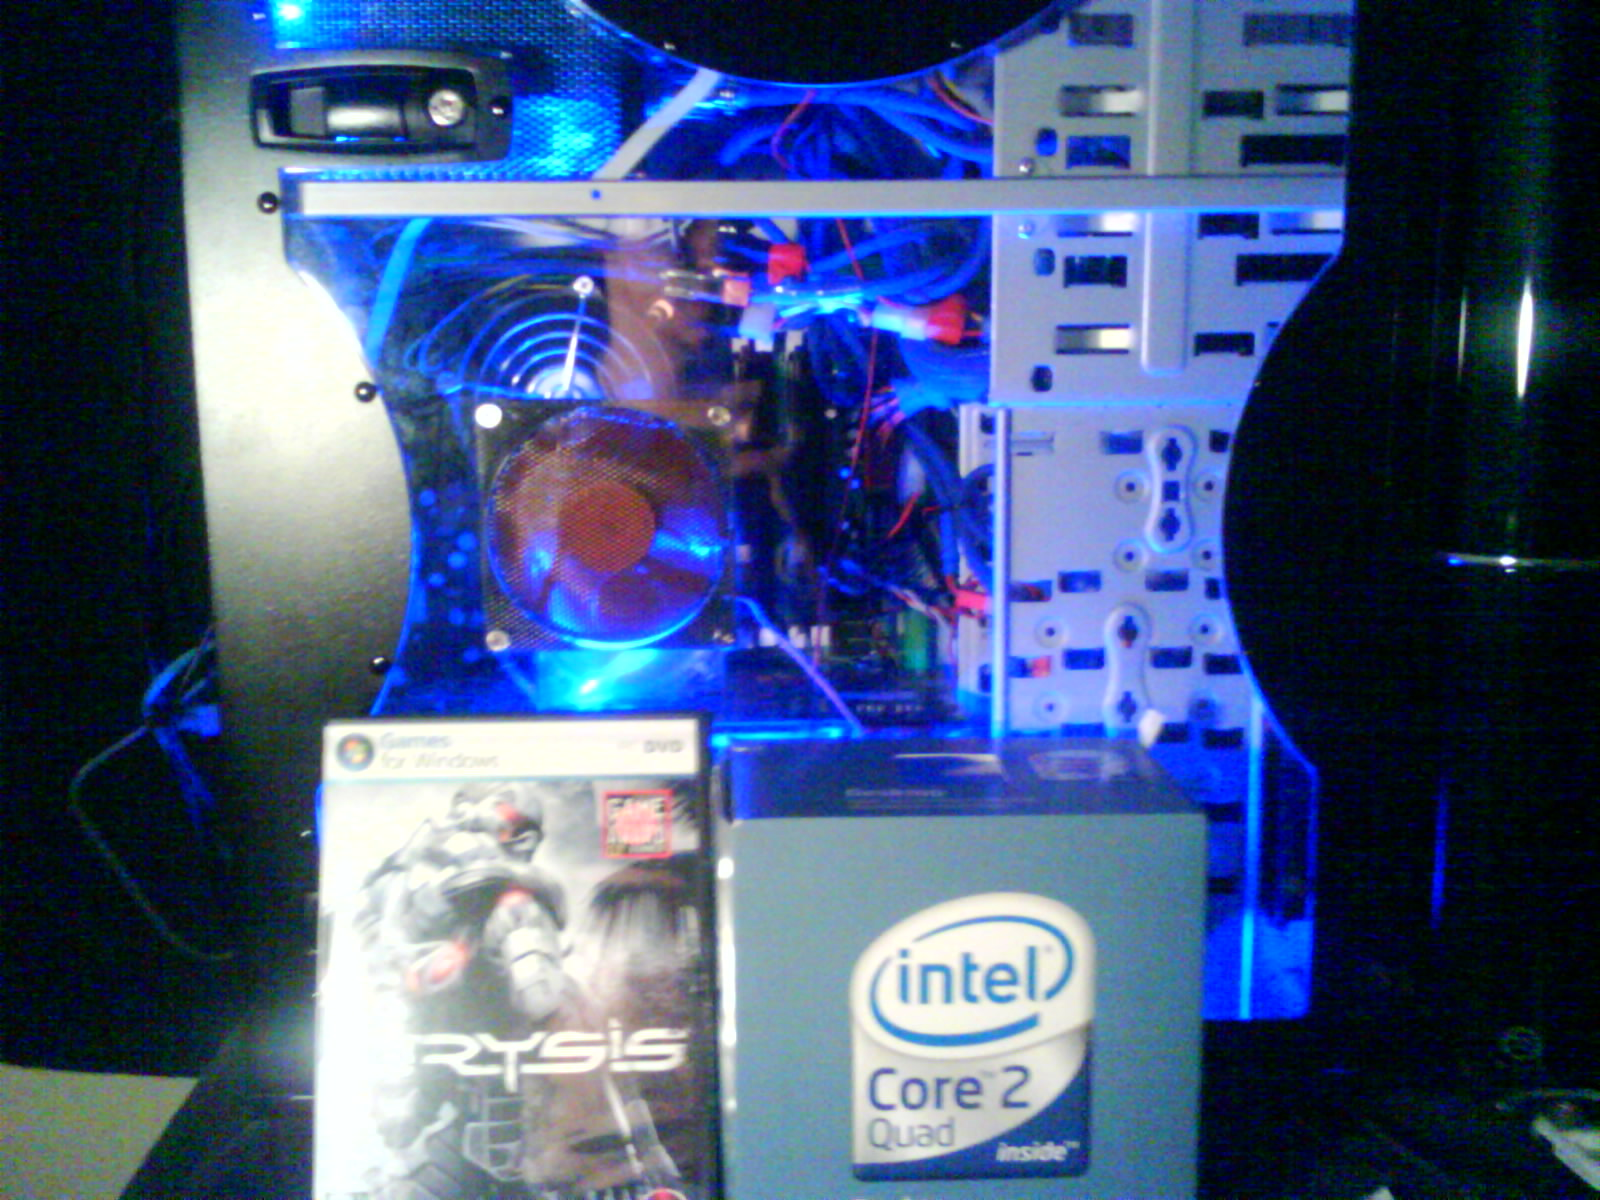 showing the Quad core and crysis.. an 8800 GTX is  behind the boxes :D